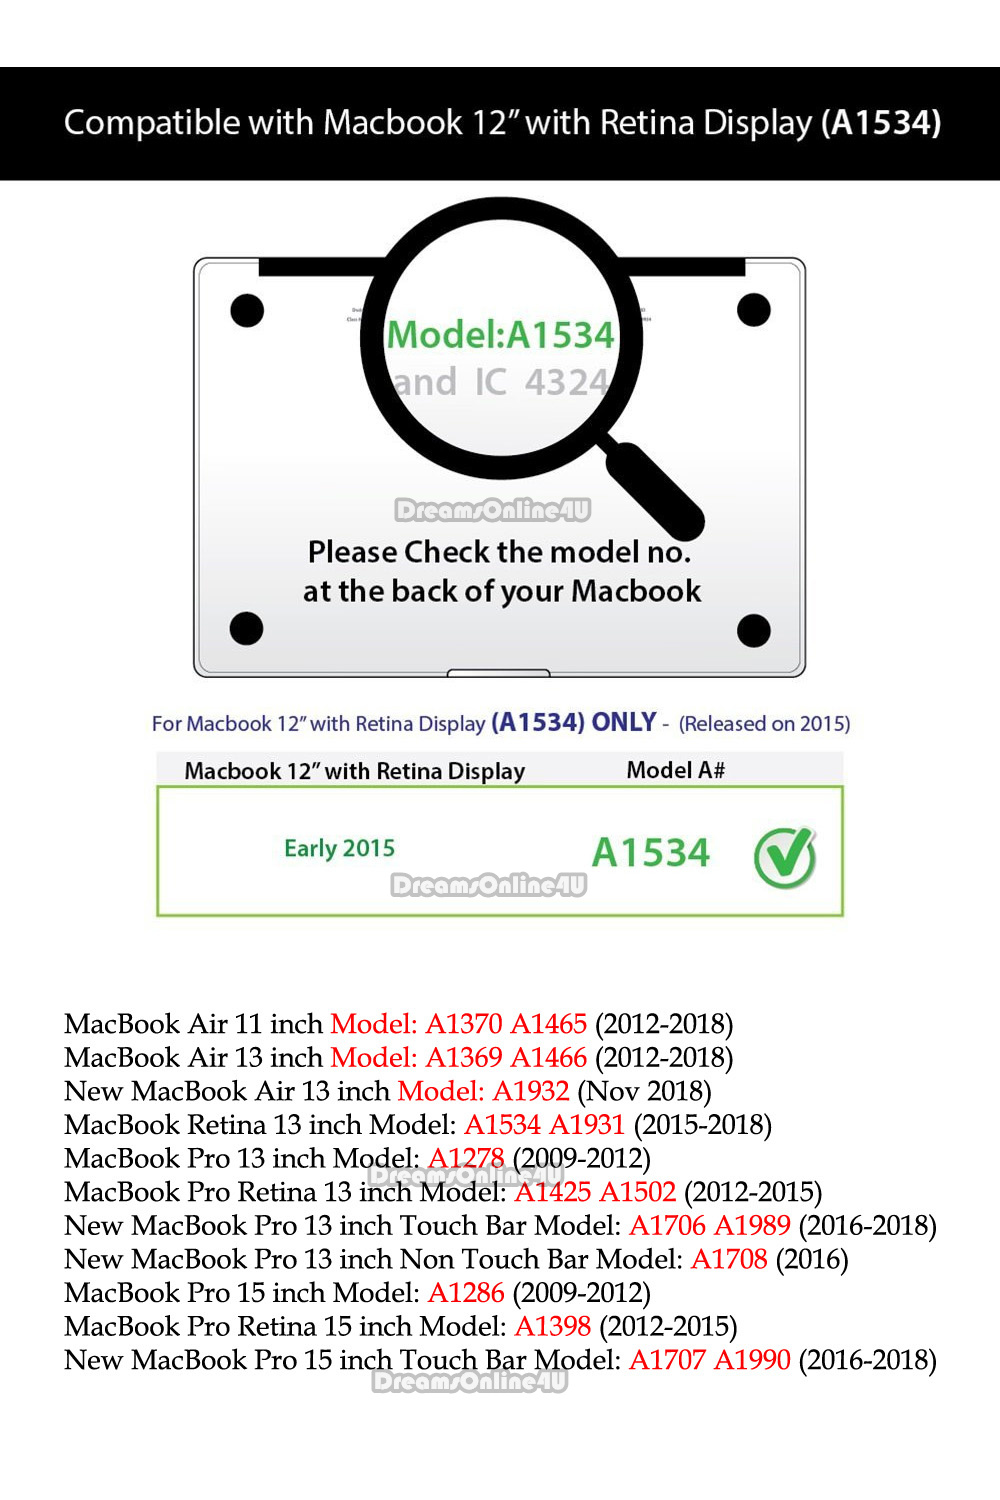 MACBOOK MODEL.jpg